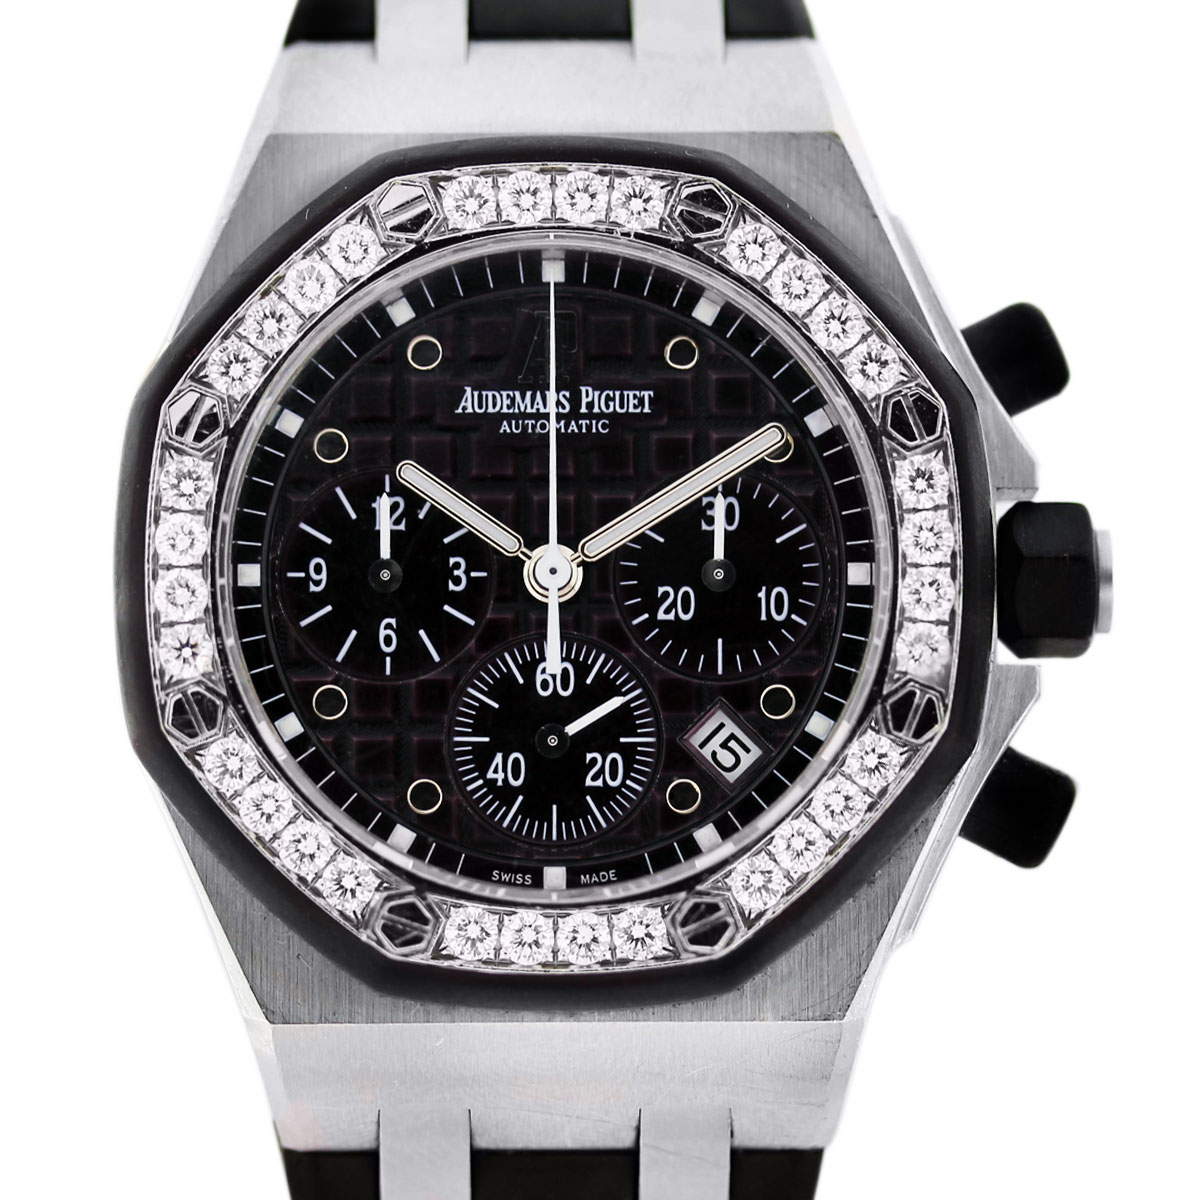 Audemars Piguet Diamond Bezel